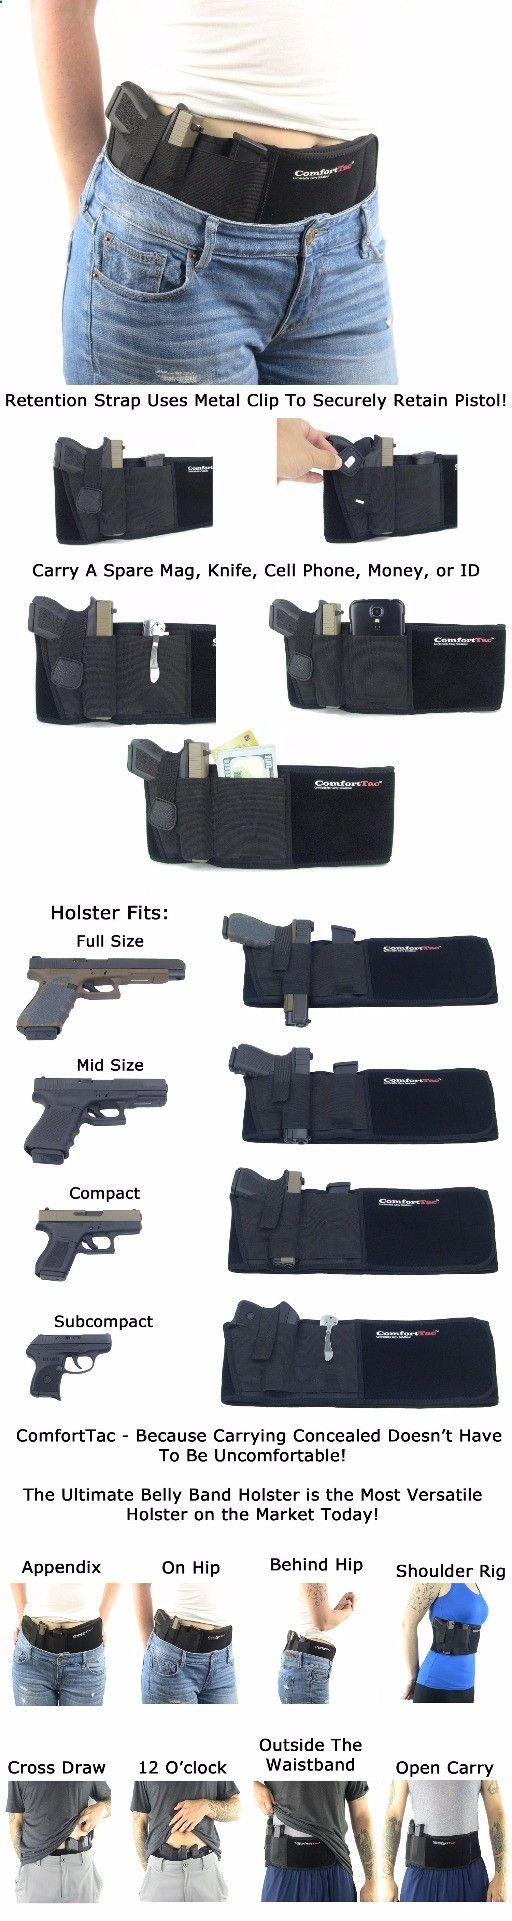 Ultimate Belly Band hand gun pistol knife Holster for Concealed Carry   Black   Fits Gun Smith and Wesson Bodyguard, Glock 19, 17, 42, 43, P238, Ruger LCP, and Similar Sized Guns   For Men and Women